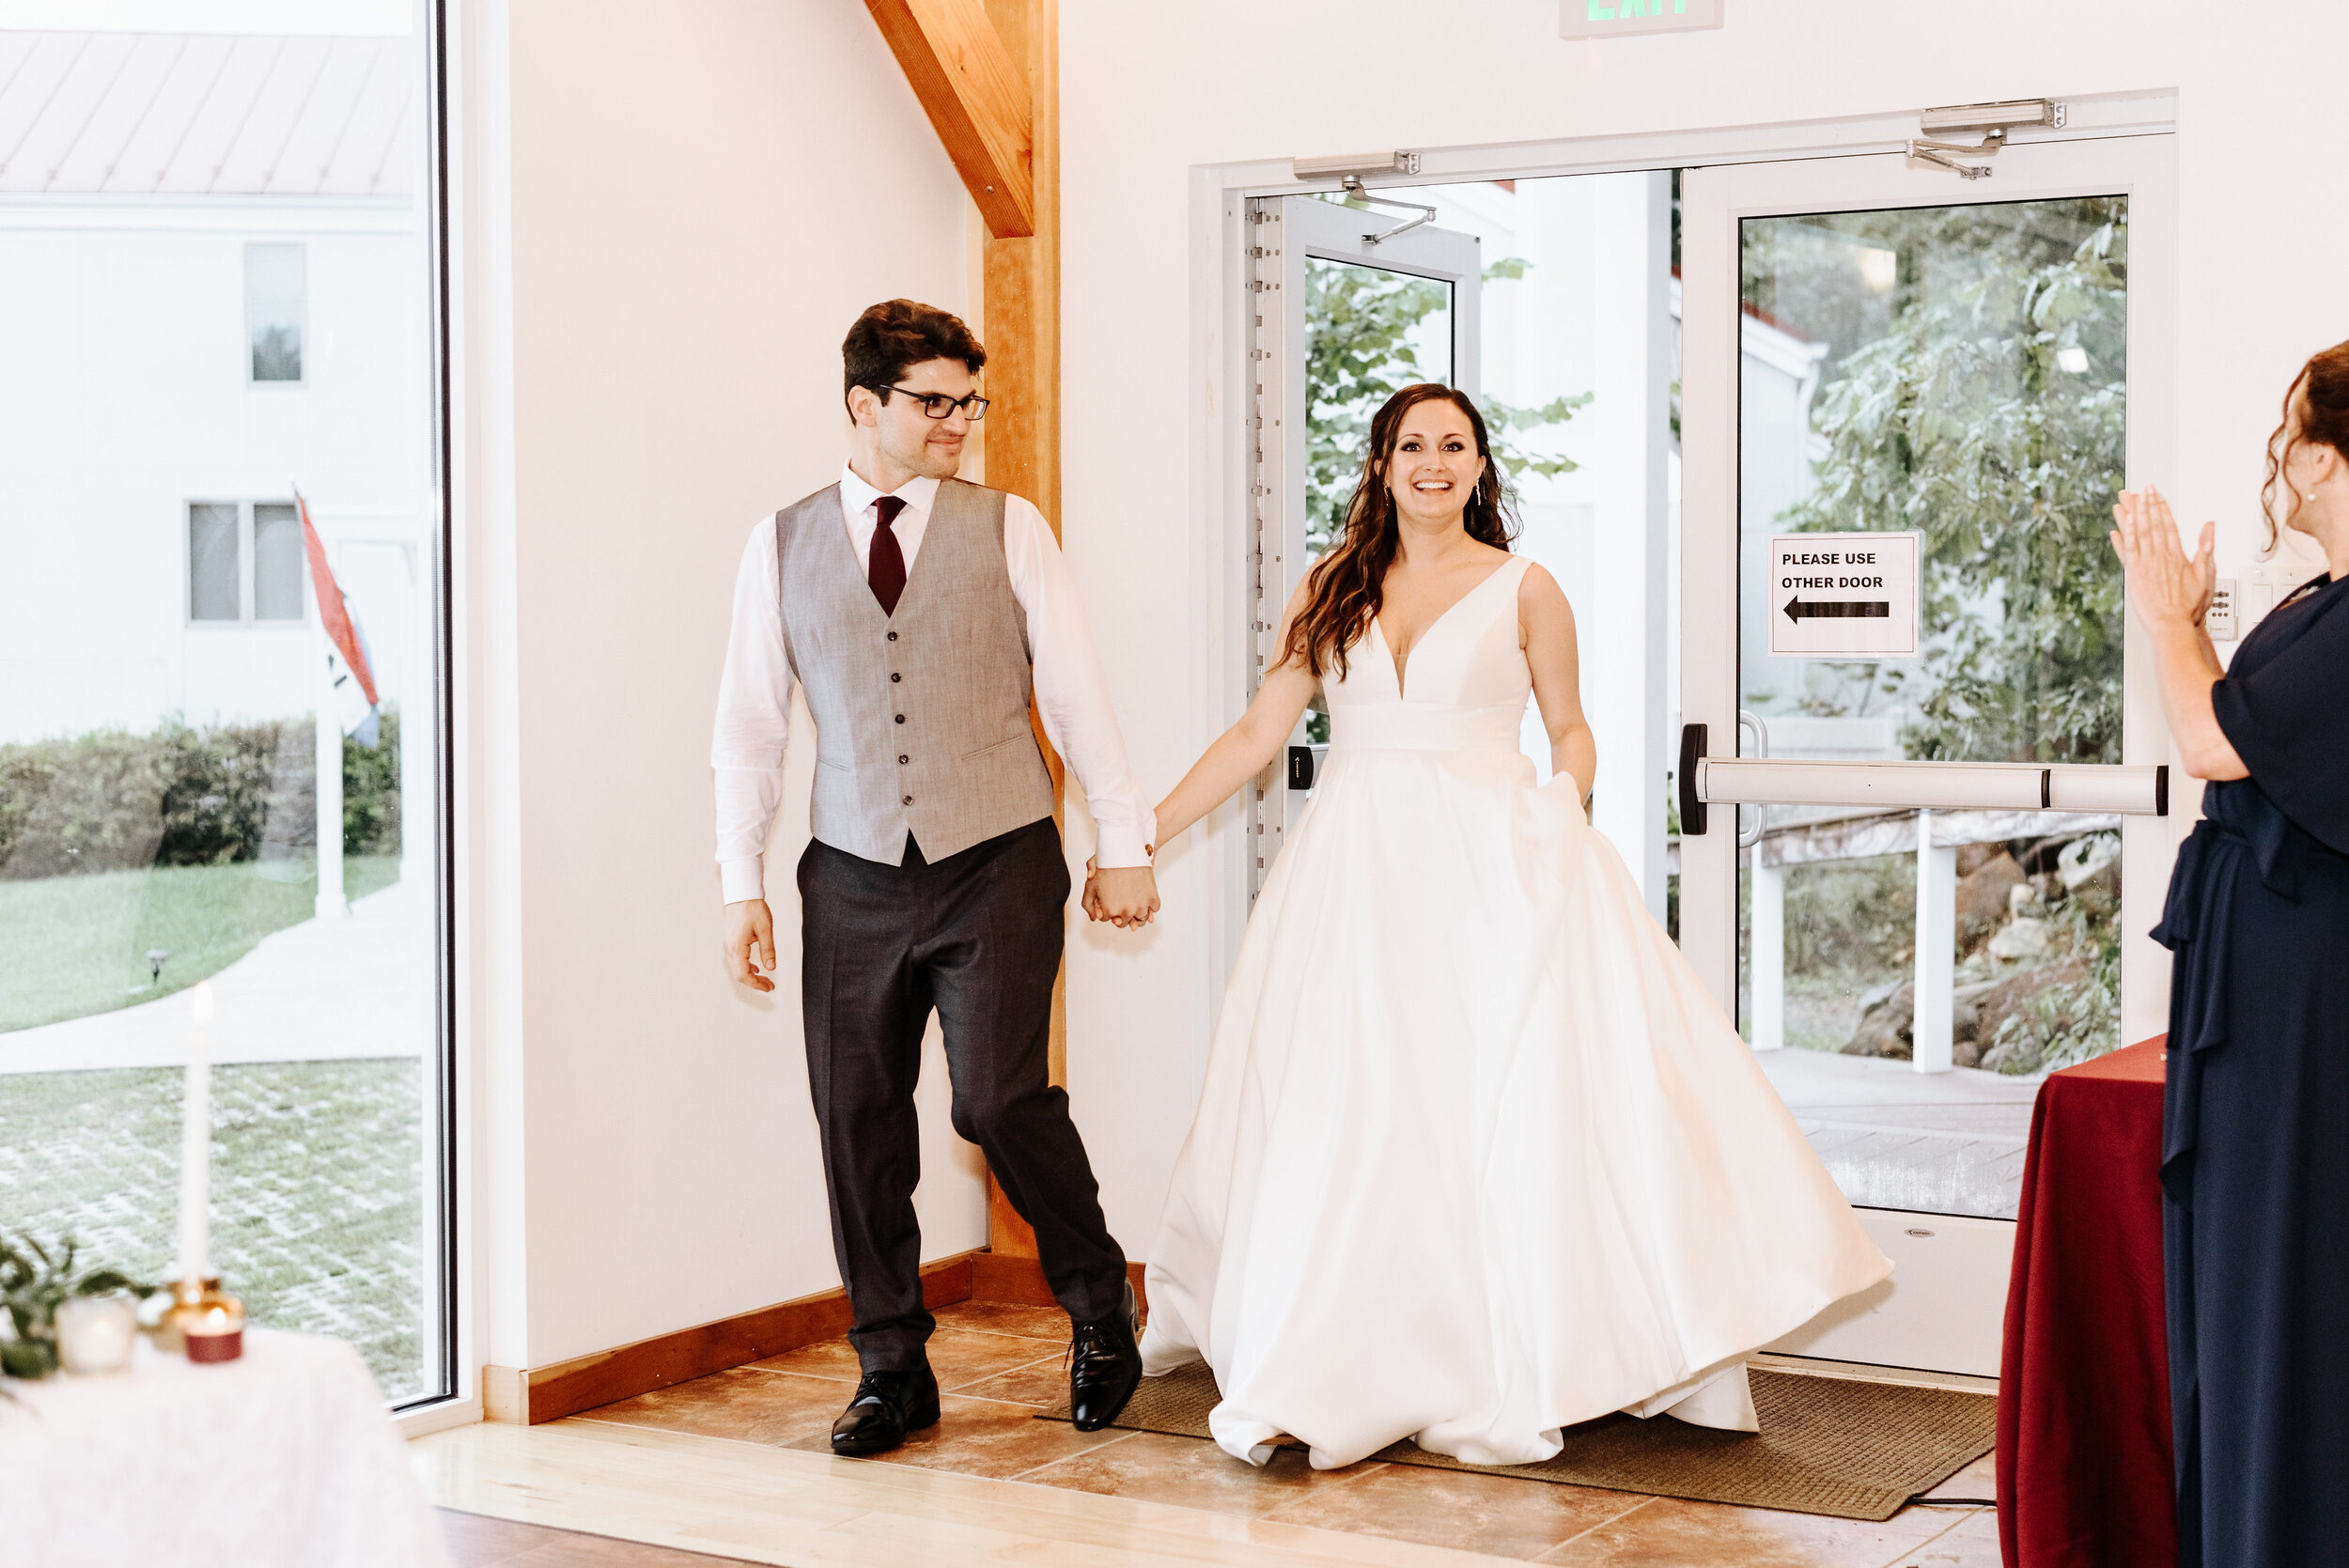 Allison_Nolan_Moss_Vineyards_Wedding_Charlottesville_Virginia_Photography_by_V_68.jpg